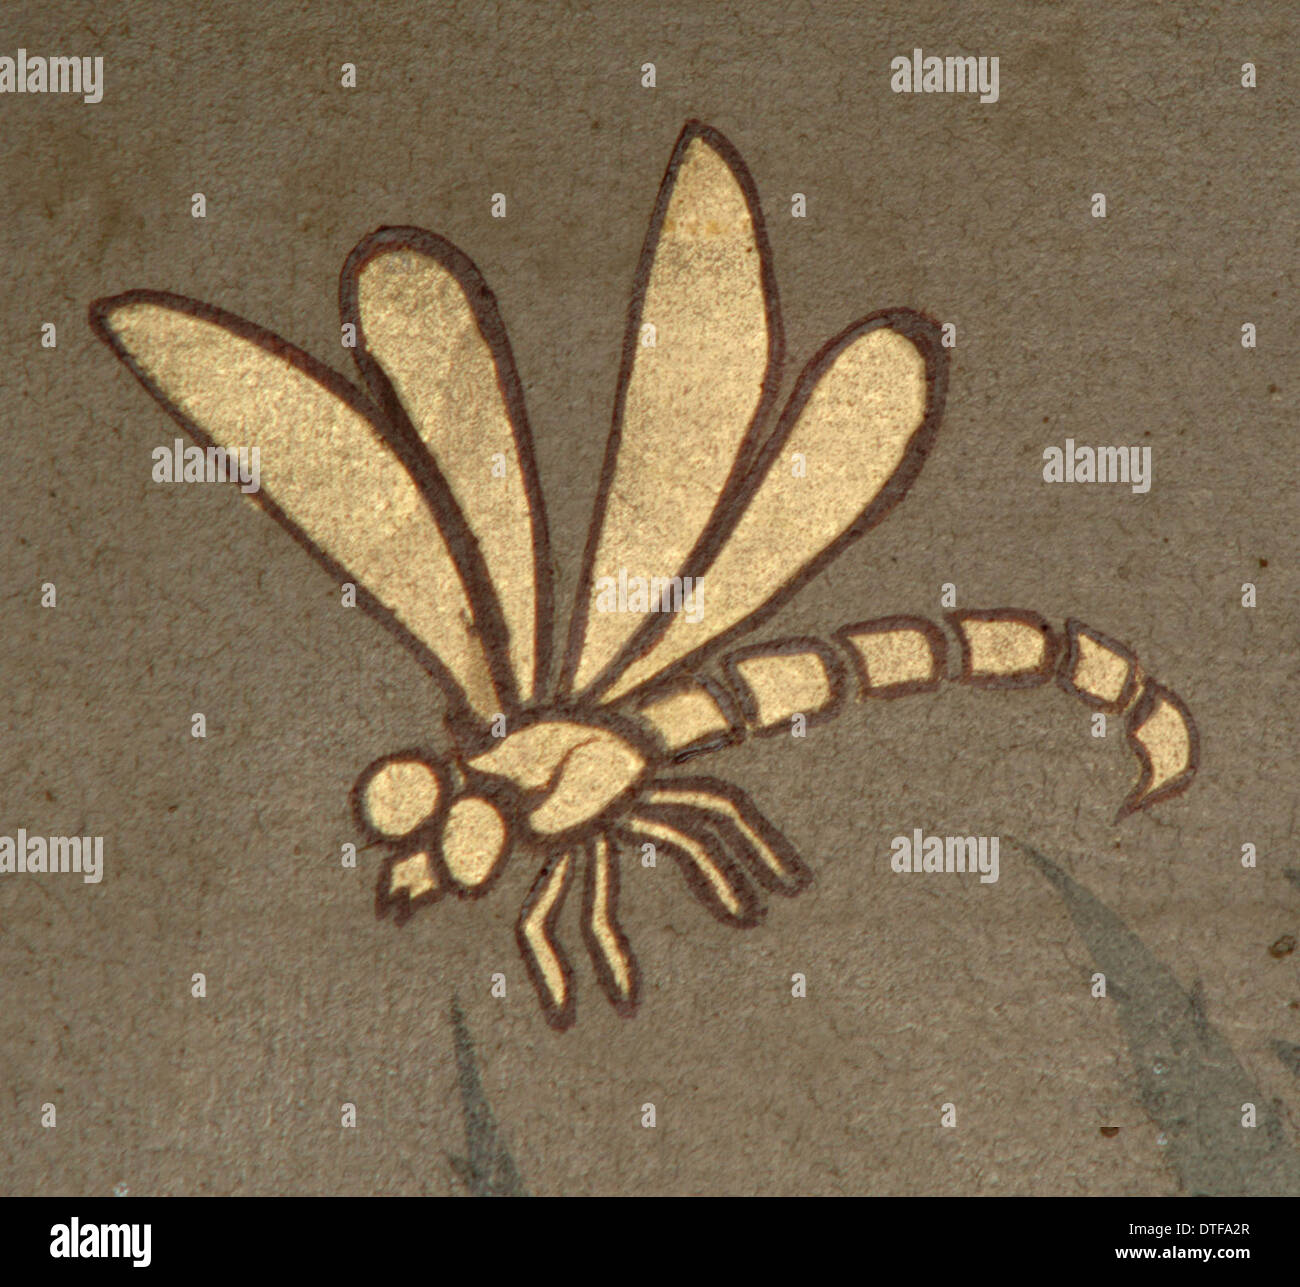 Dragonfly from decorative ceiling panels Stock Photo